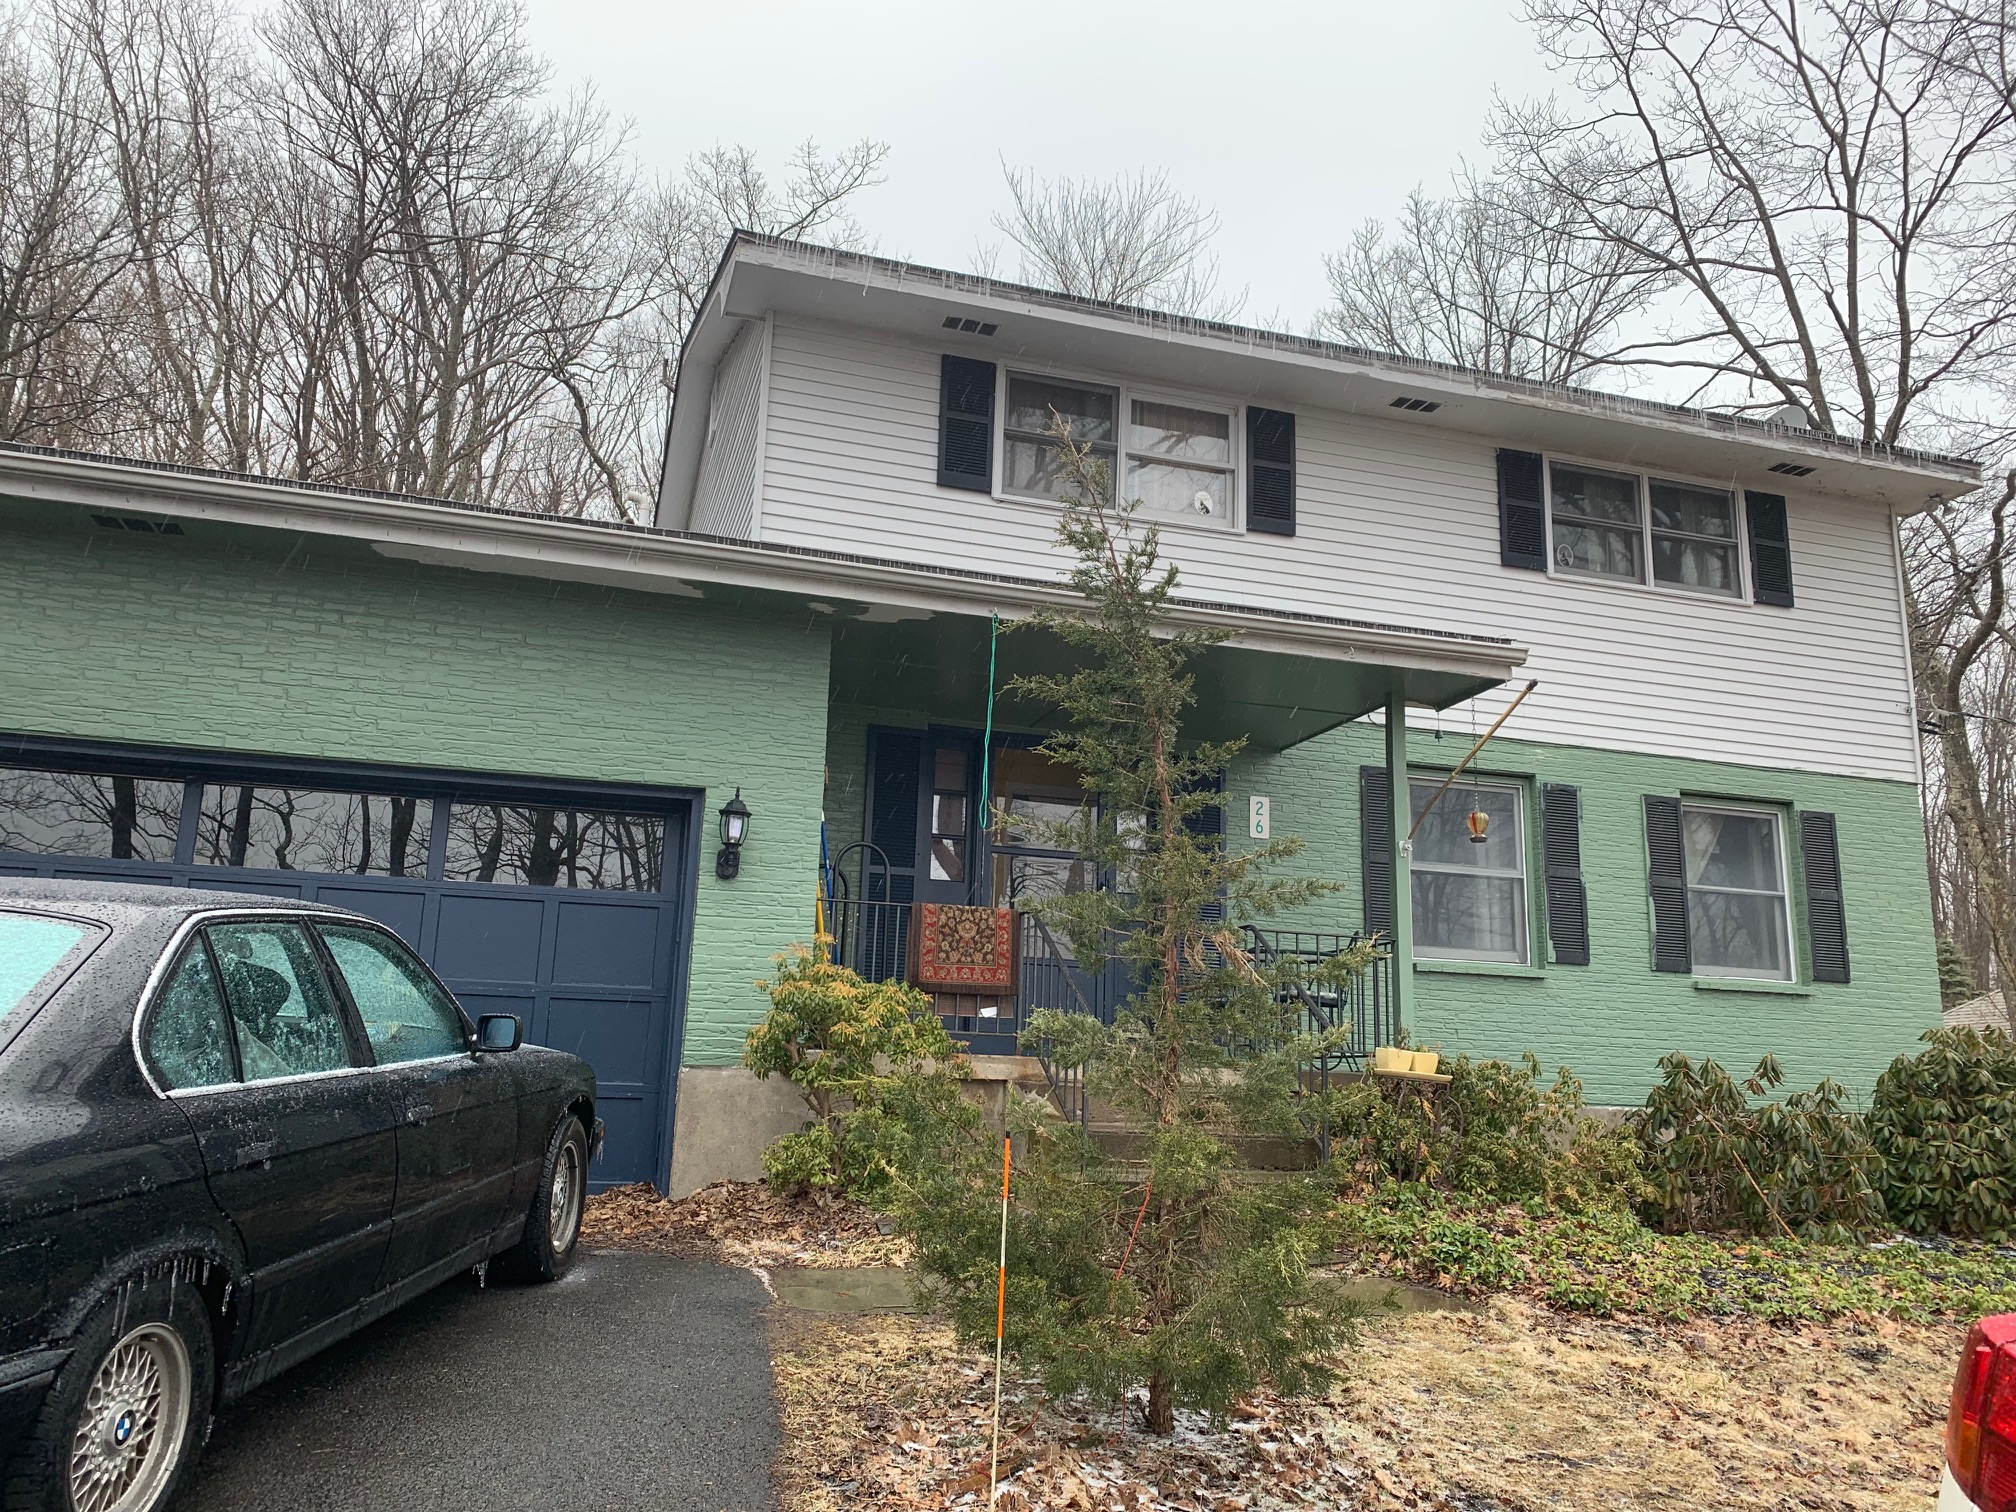 Mt Pocono – 4 Bedroom 4 Bath $169,000